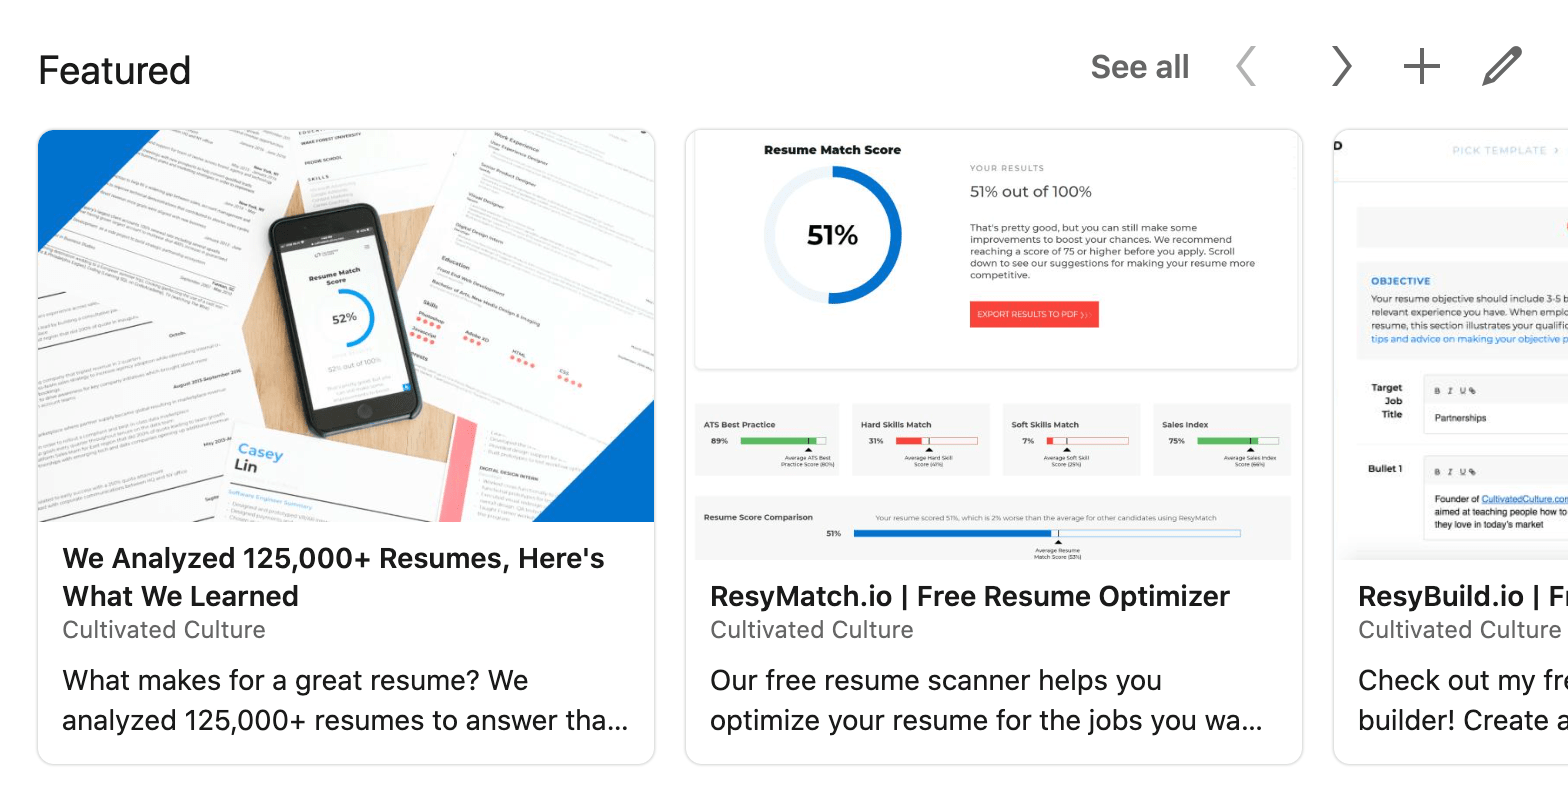 Example of LinkedIn Featured Section